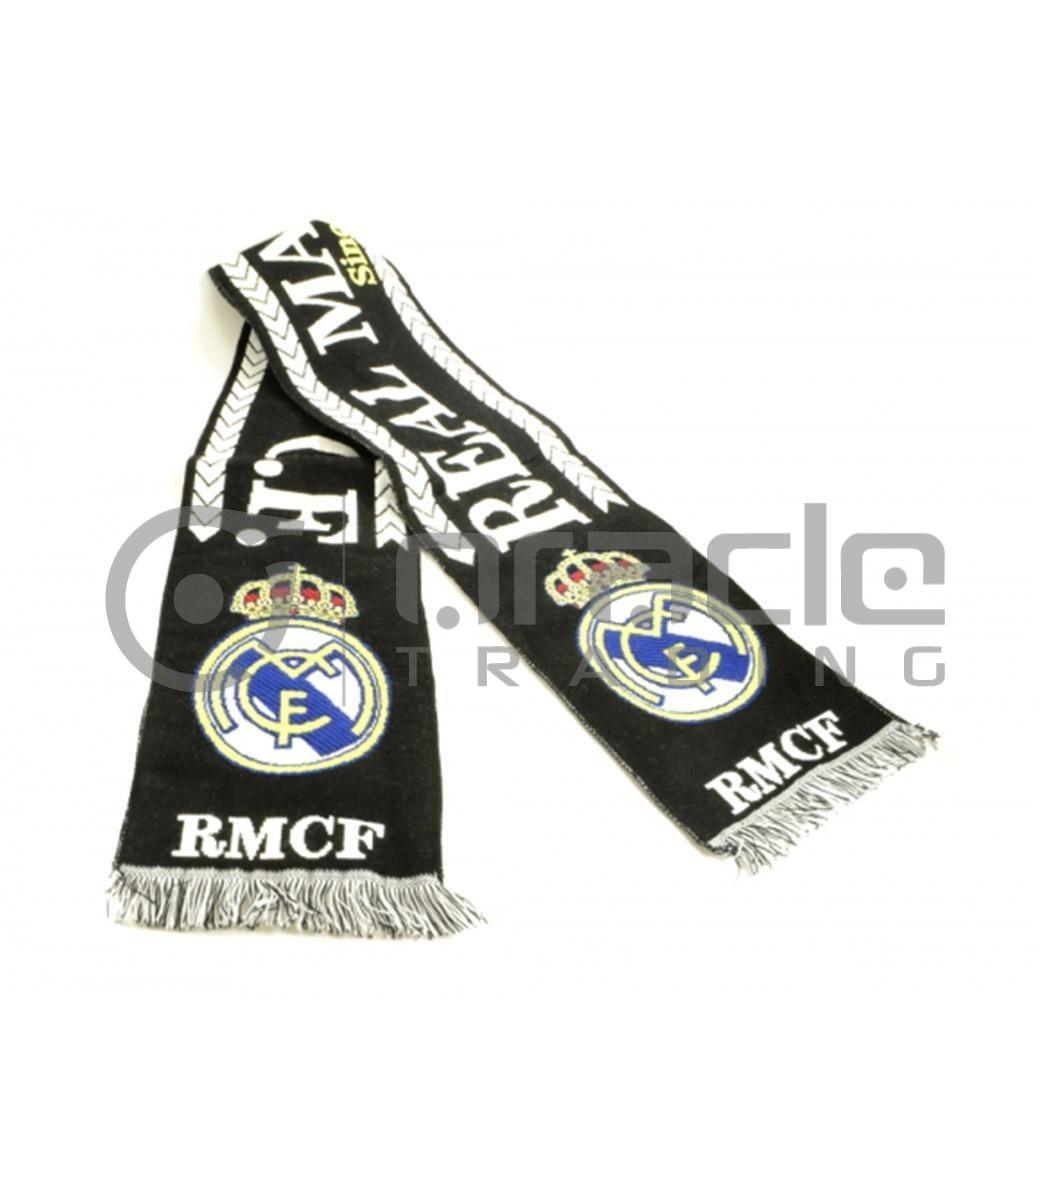 Real Madrid Knitted Scarf - Black - Made in Spain